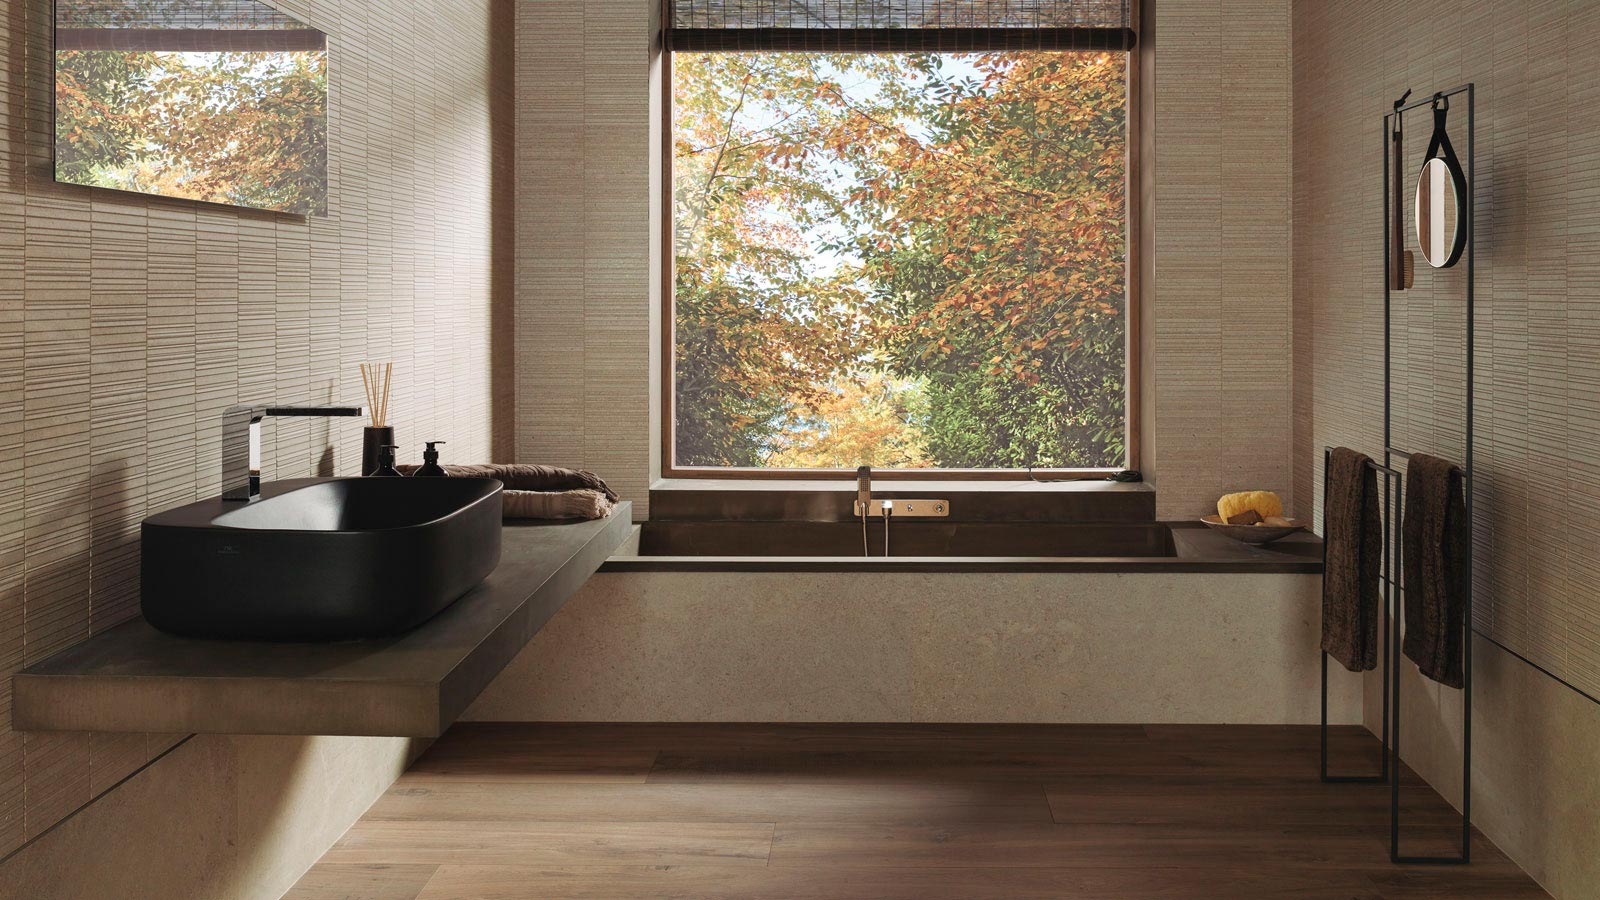 The Premium Large Size Ceramics And Neutral Tones Strengthen The Image Of Porcelanosa